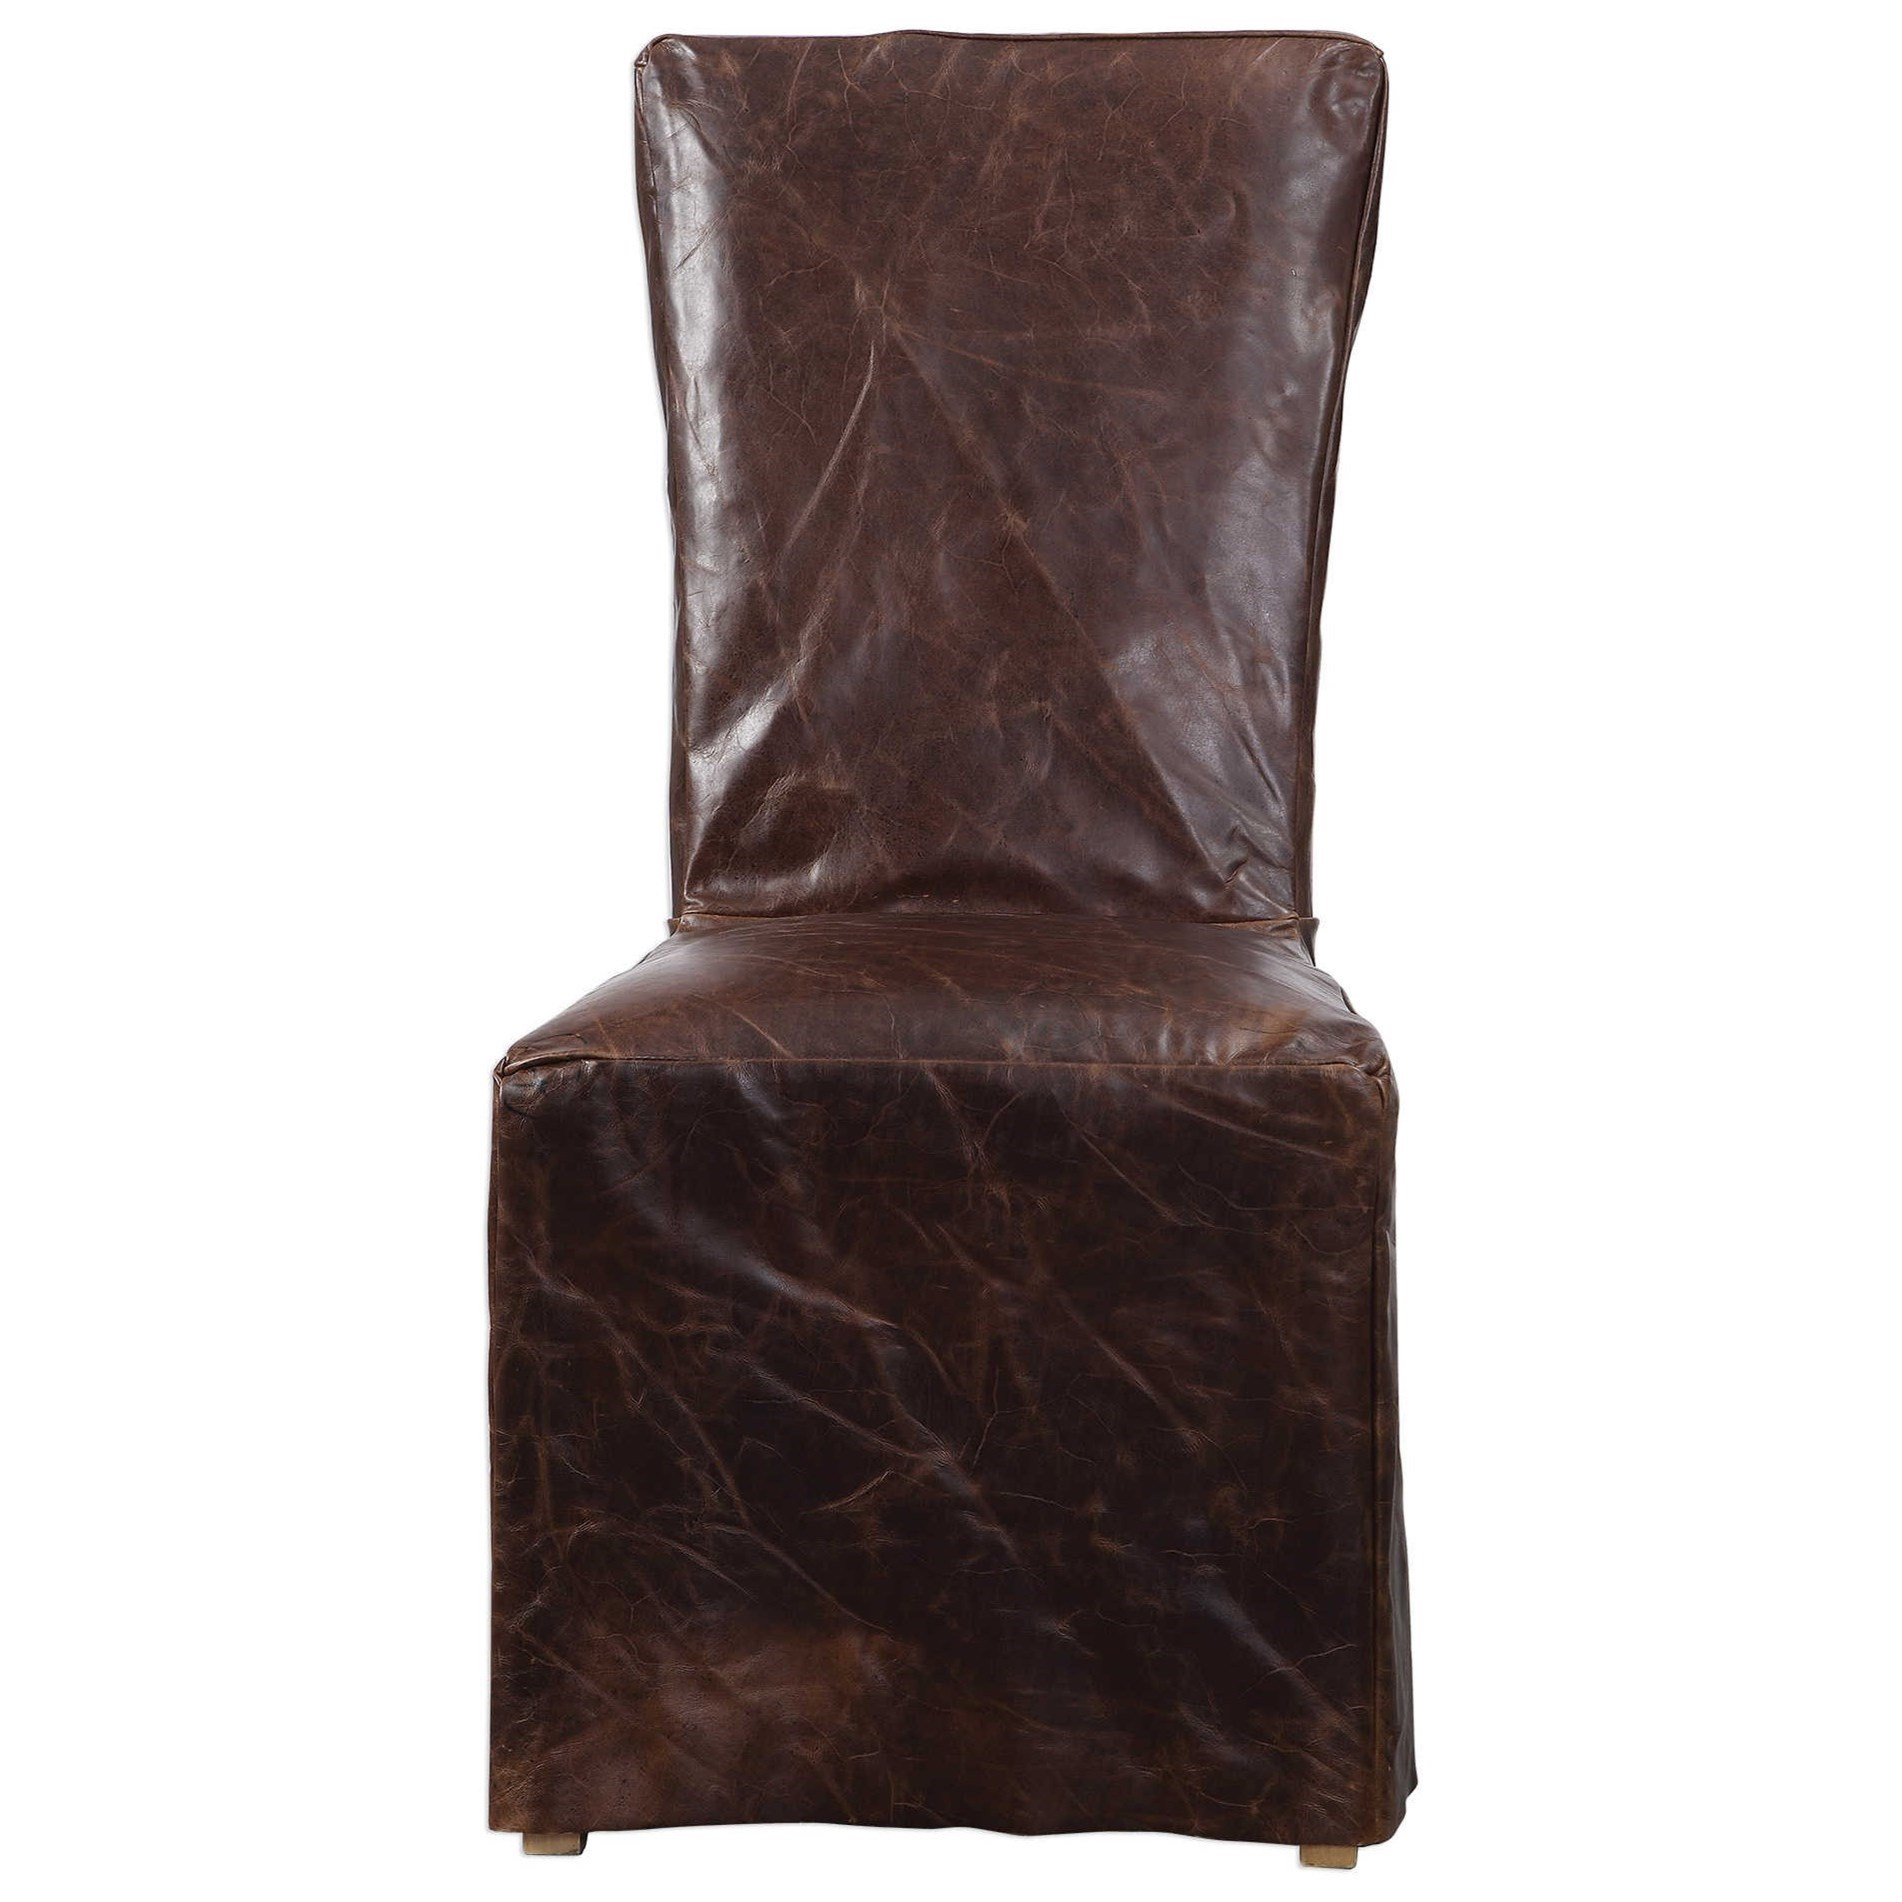 Accent Furniture - Accent Chairs Oaklyn Armless Chair by Uttermost at Del Sol Furniture